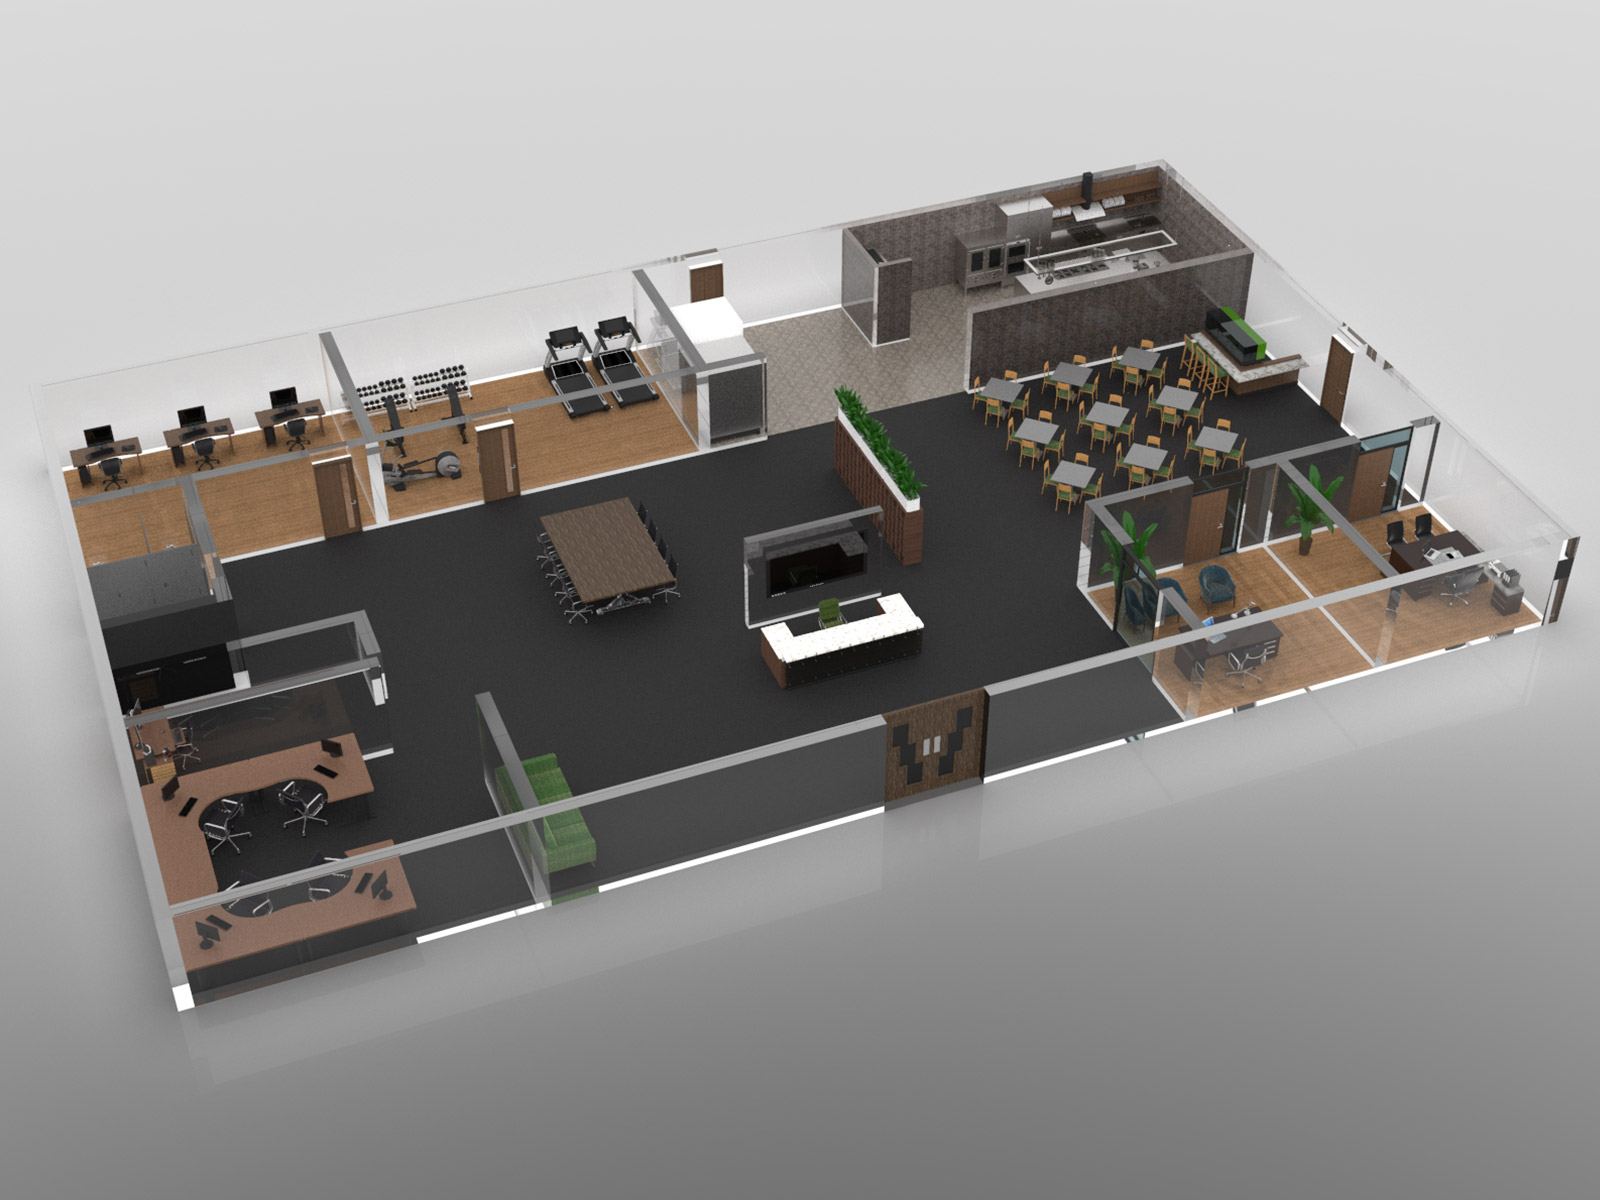 3d rendering of the clubhouse showing several rooms